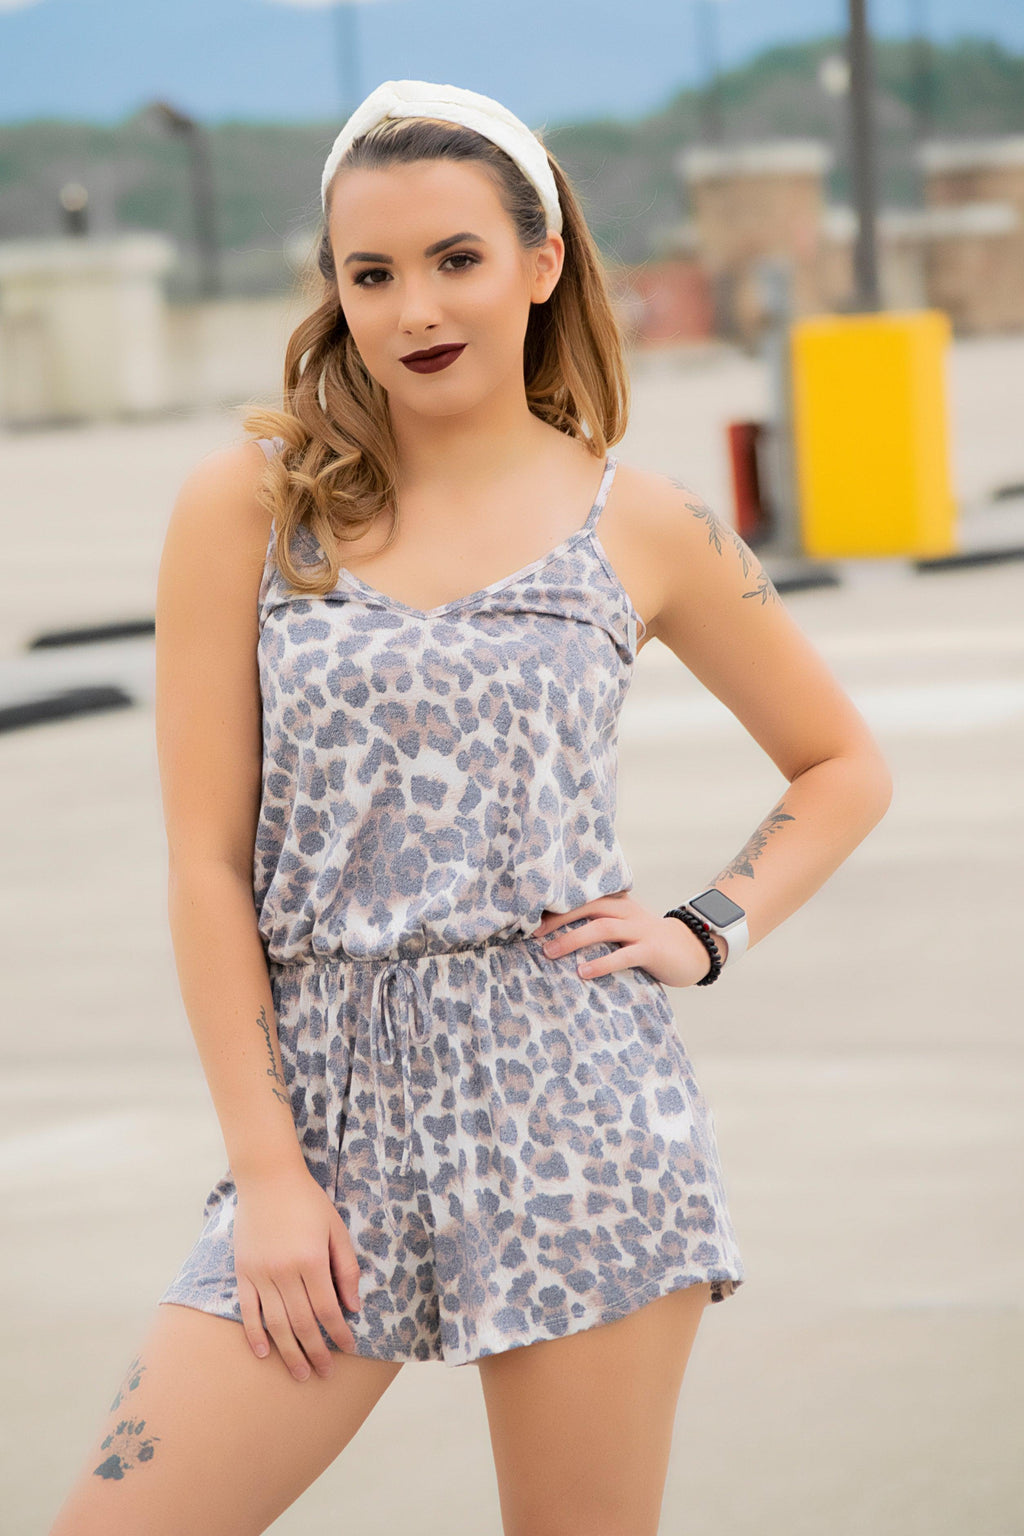 Animal Print Romper - 512 Boutique